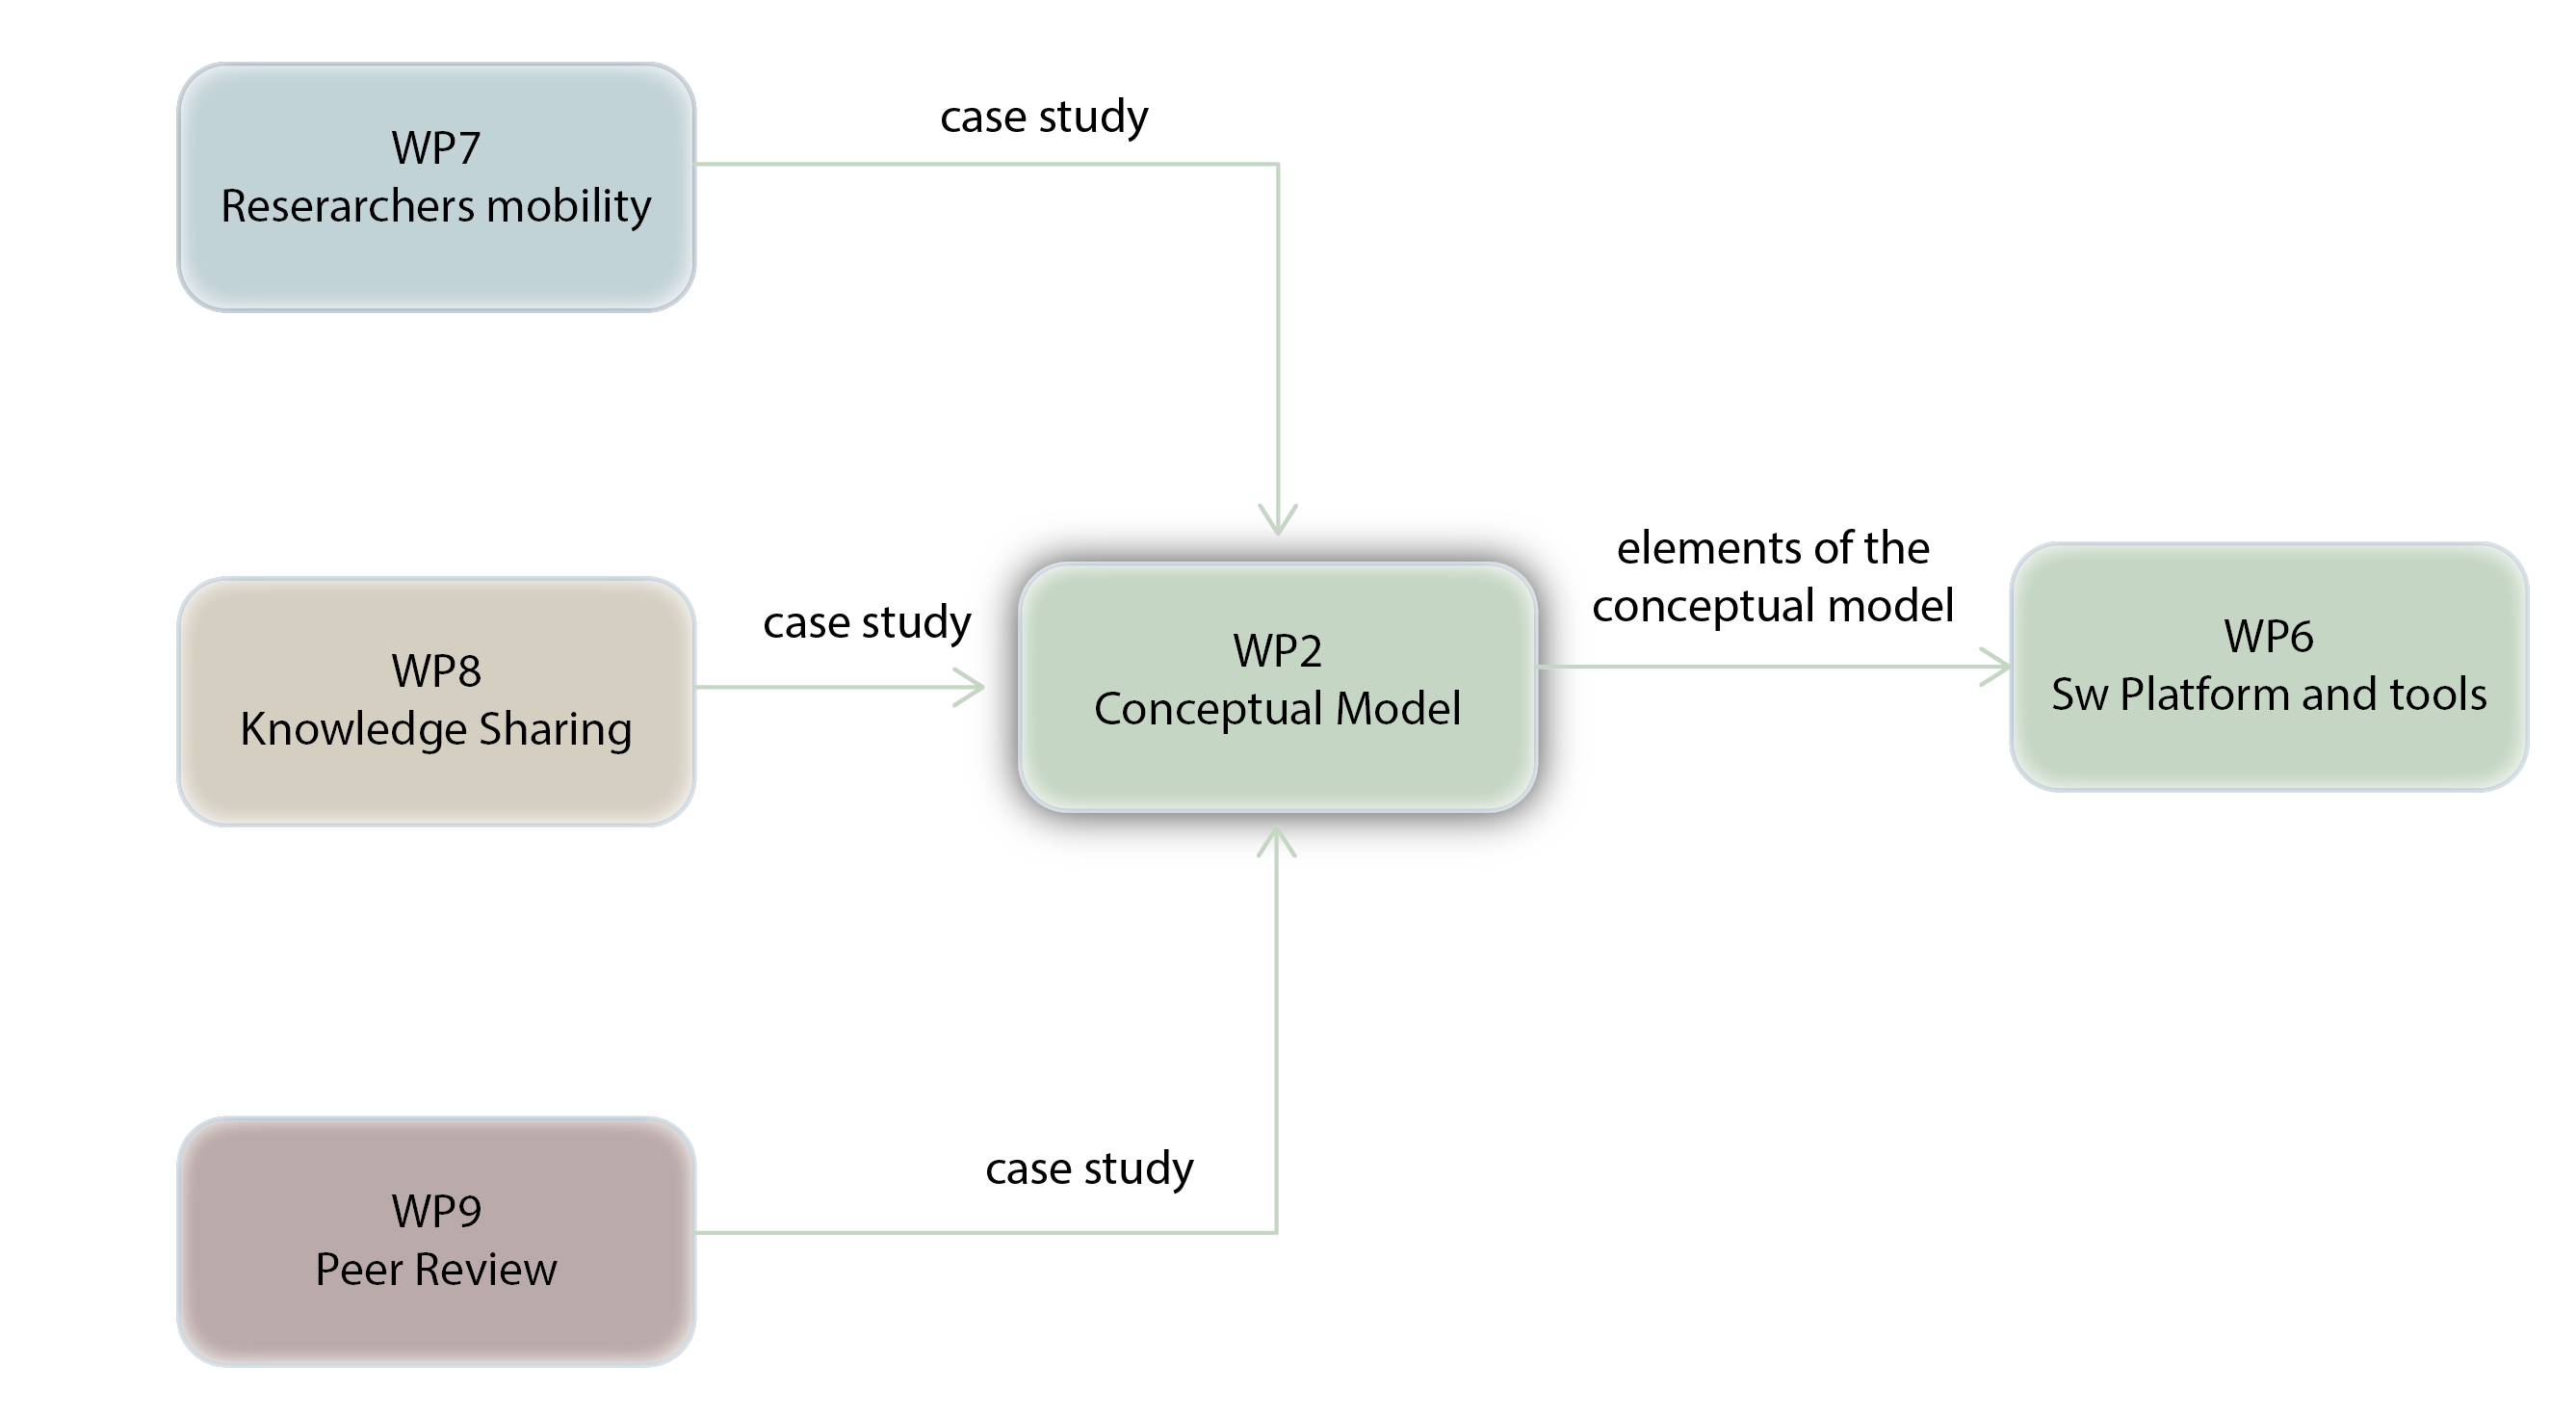 WP2 relationship with other work packages